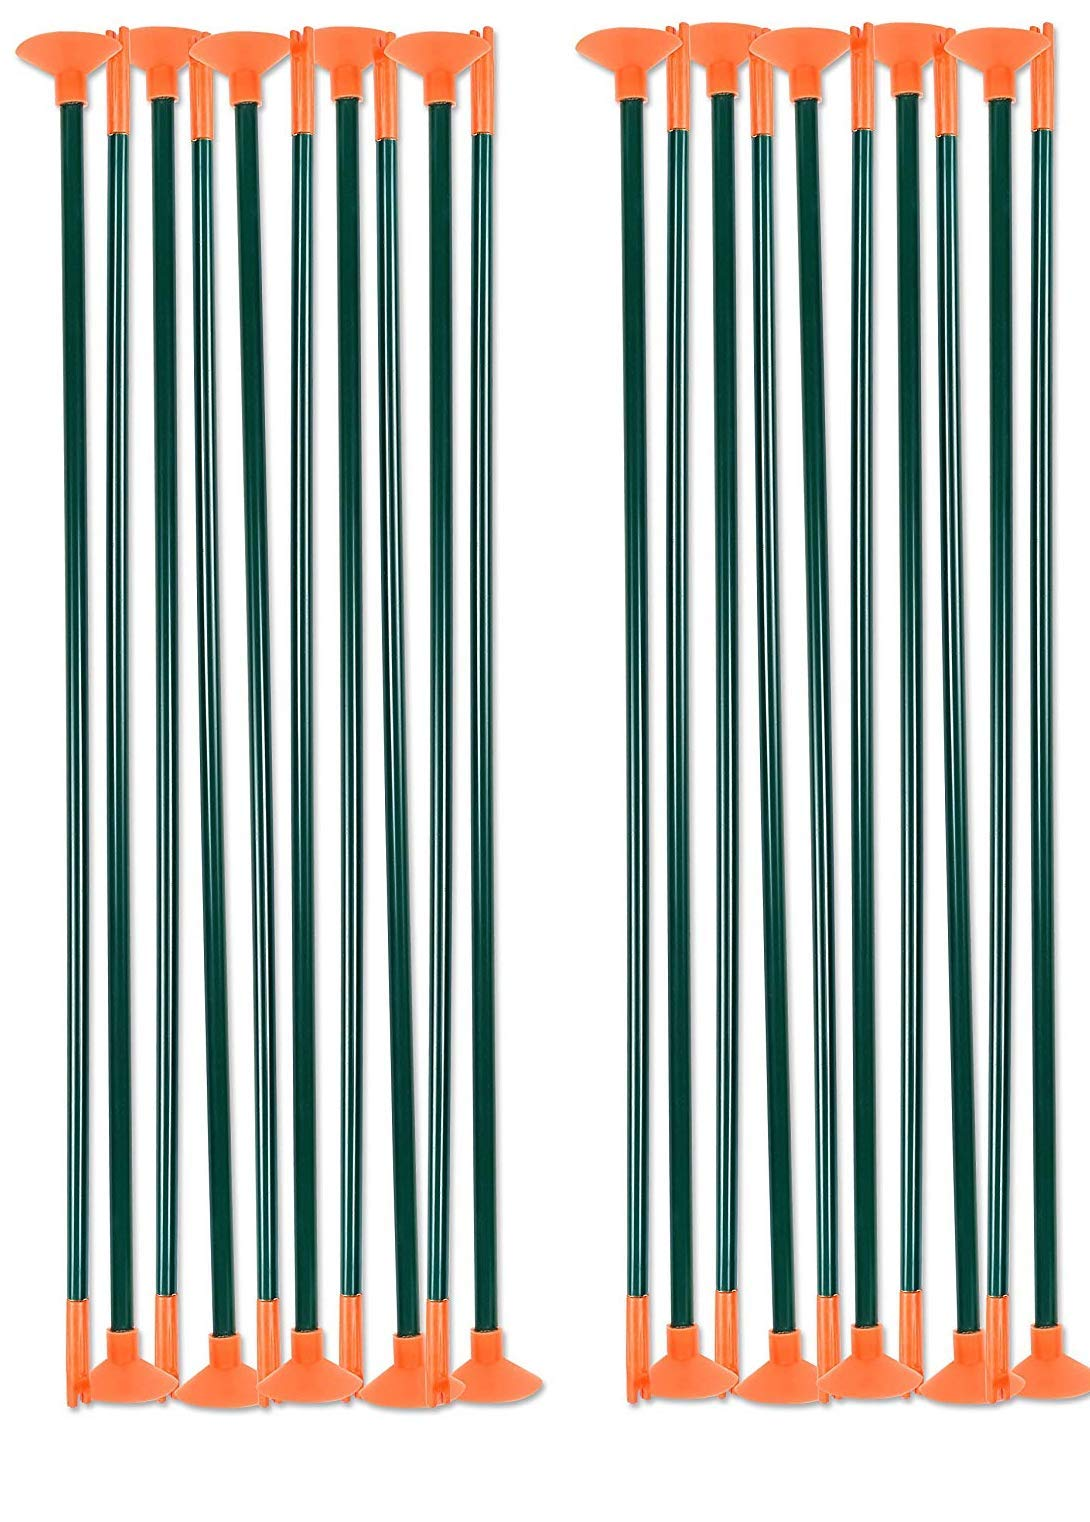 Sunny Days Entertainment Maxx Action Hunting Series 10-Pack Replacement Arrows (Twо Расk)